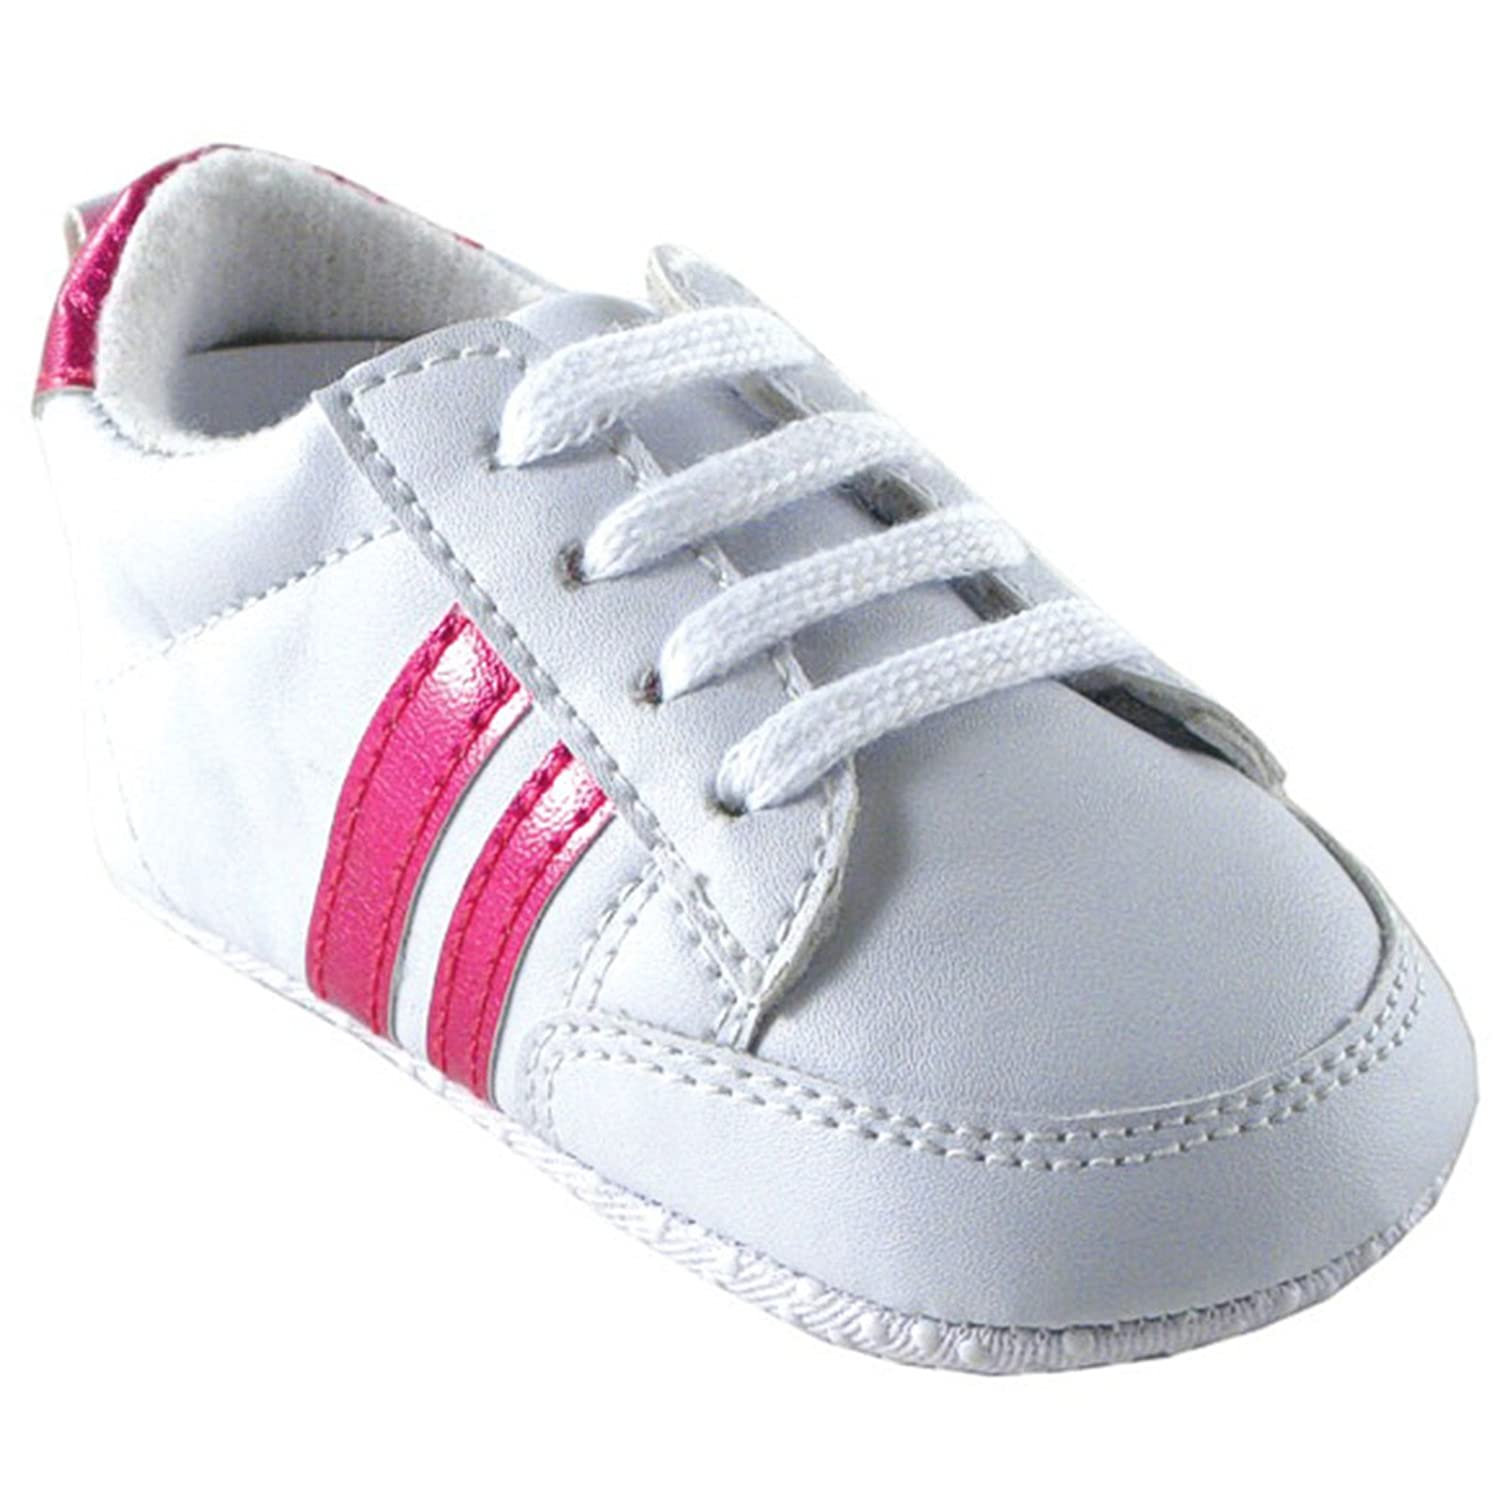 Luvable Friends Basic Stripe Sneaker, Pink, 6-12 Months